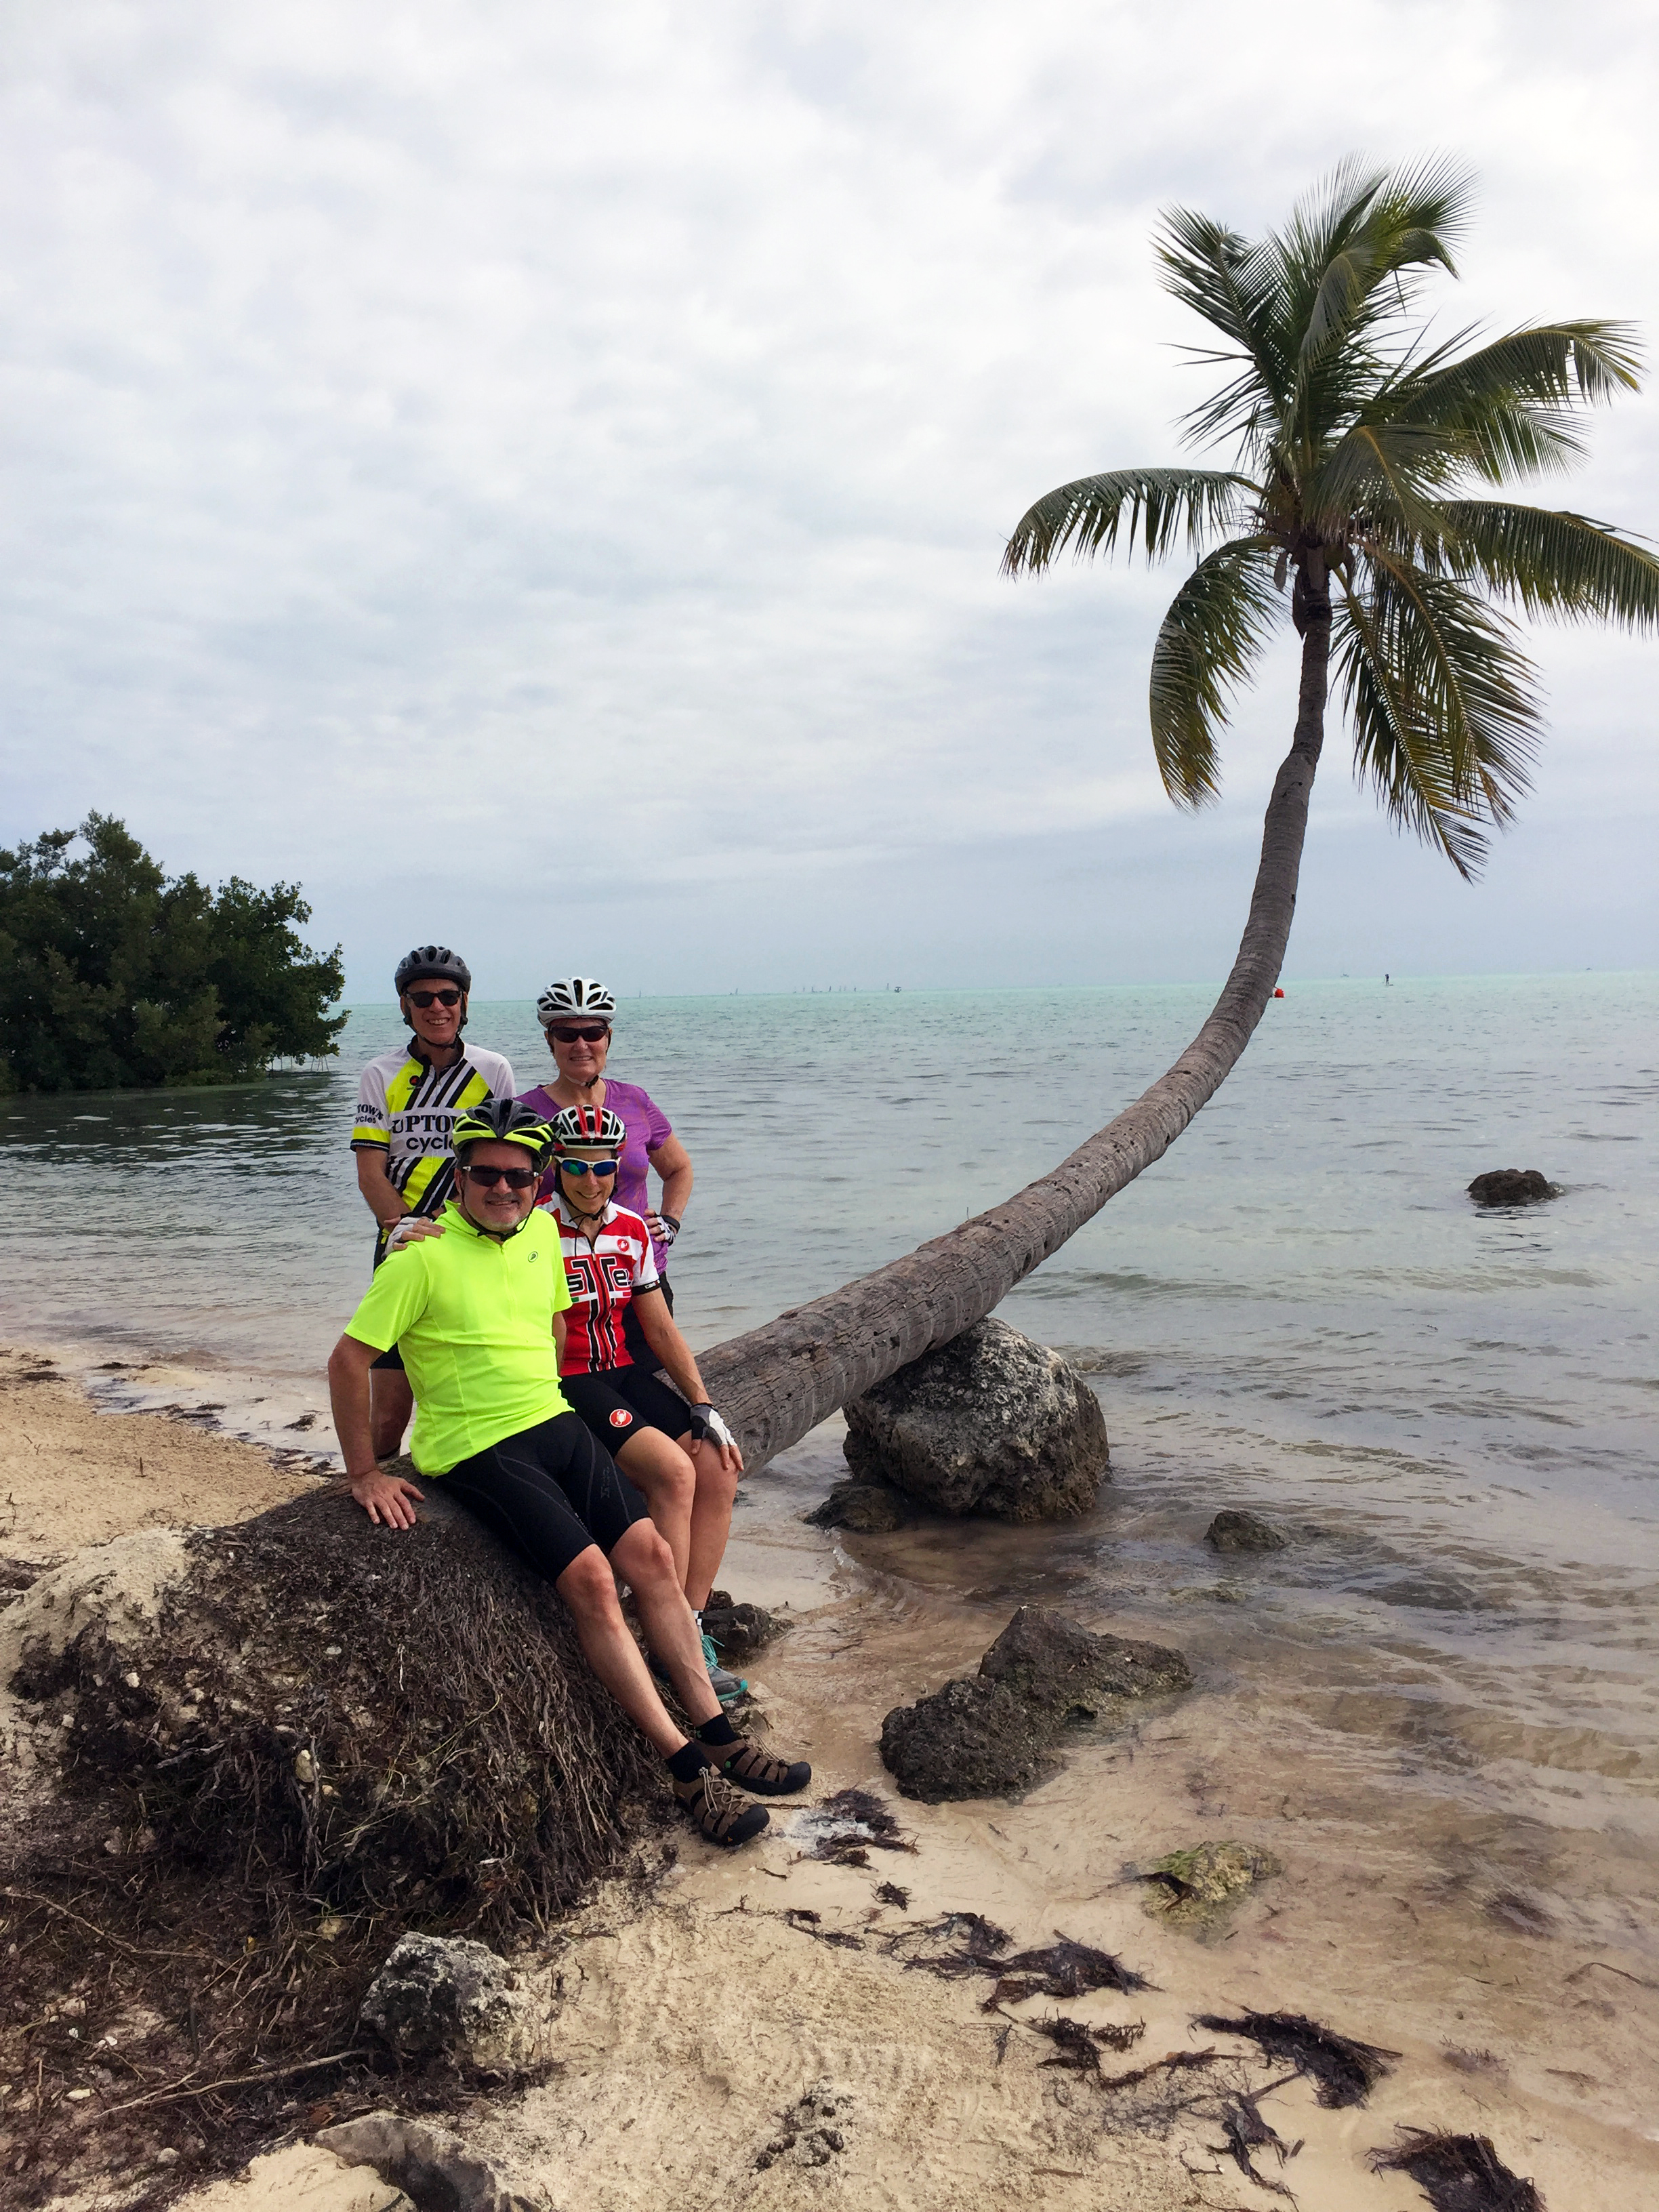 Keys bike tour, including a stop at the Moorings palm tree from Bloodline